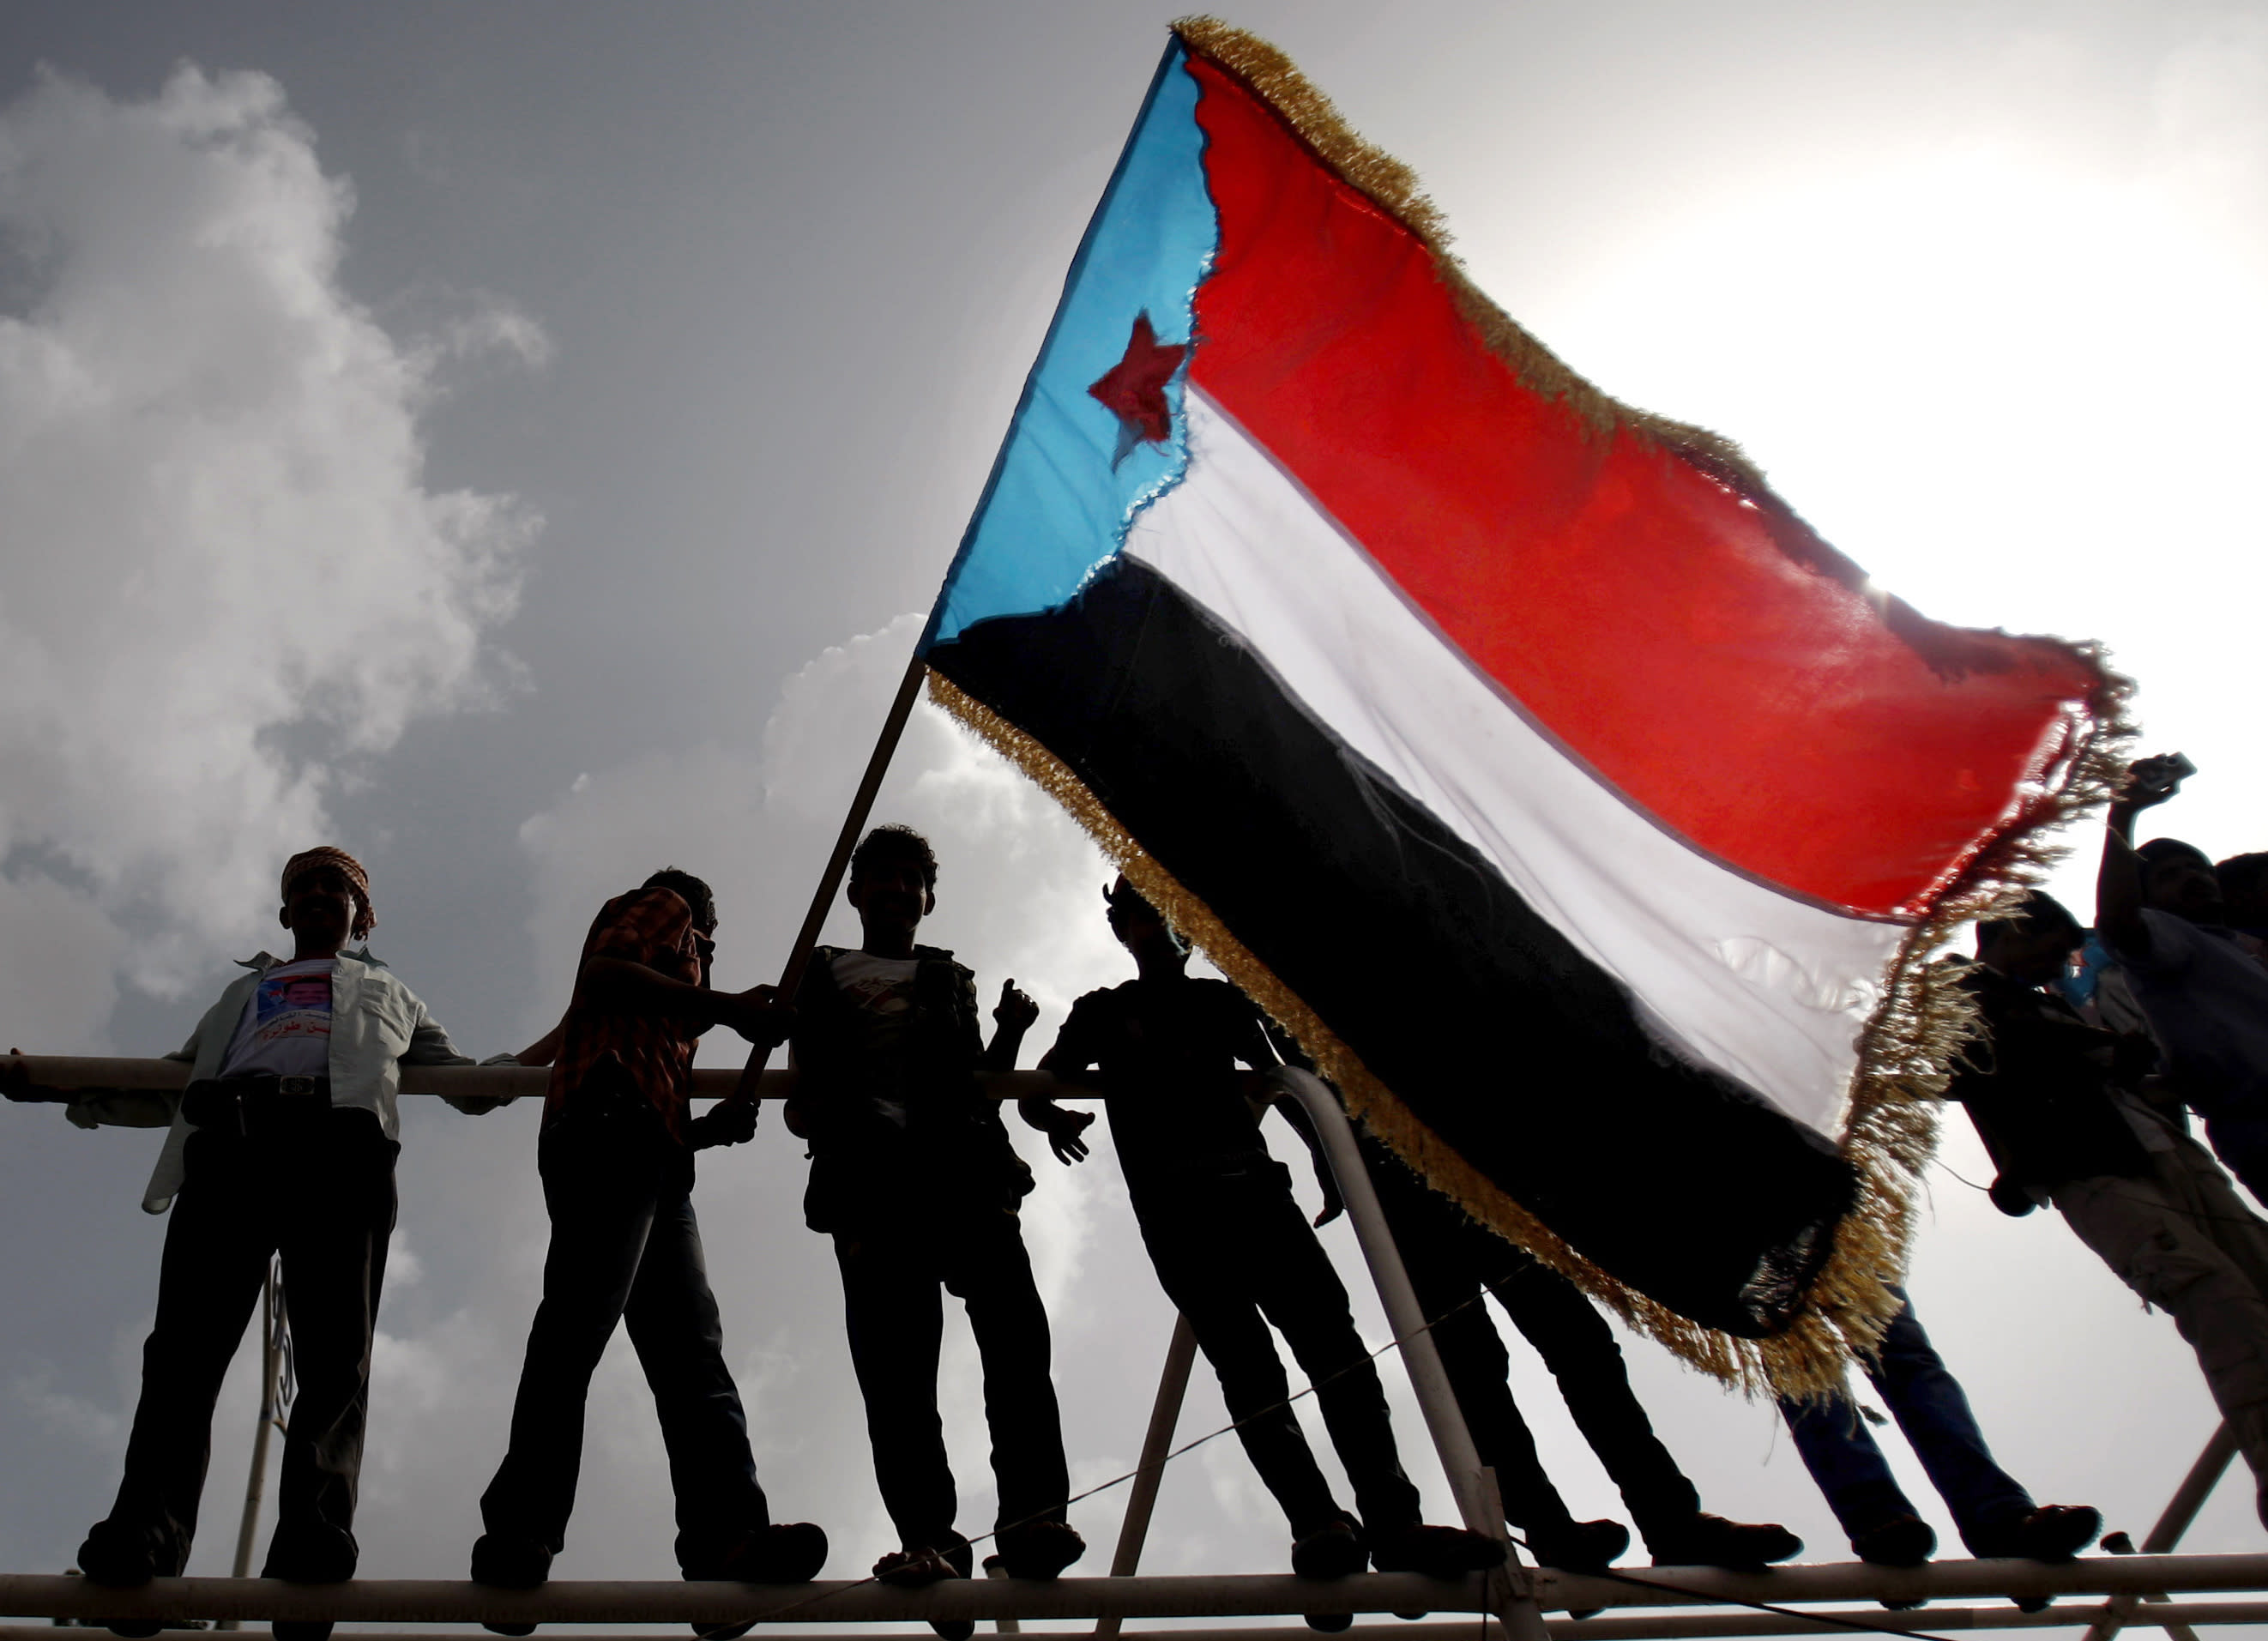 FILE - In this Jan. 13, 2013 file photo, Yemeni supporters of the Southern Separatist Movement hold a flag of the former South Yemen, during a rally in Aden, Yemen. Fighting between their allies in southern Yemen has opened a gaping wound in the Saudi Arabia and the United Arab Emirates' coalition fighting the country's rebels. If they can't fix it, it threatens to further fragment the country into smaller warring pieces. (AP Photo/Hani Mohammed, File)